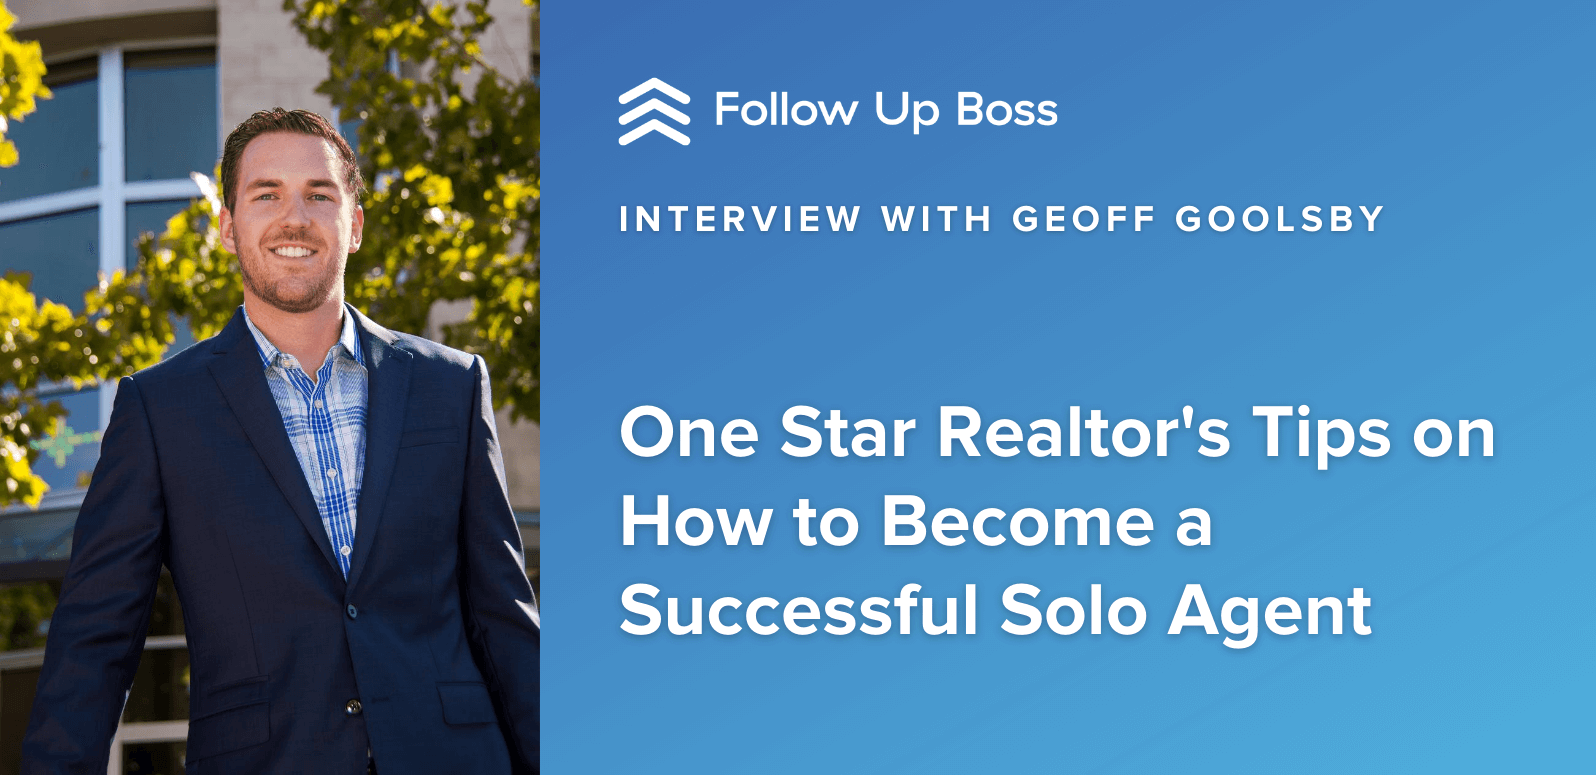 One Star Realtor's Tips on How to Become a Successful Solo Agent